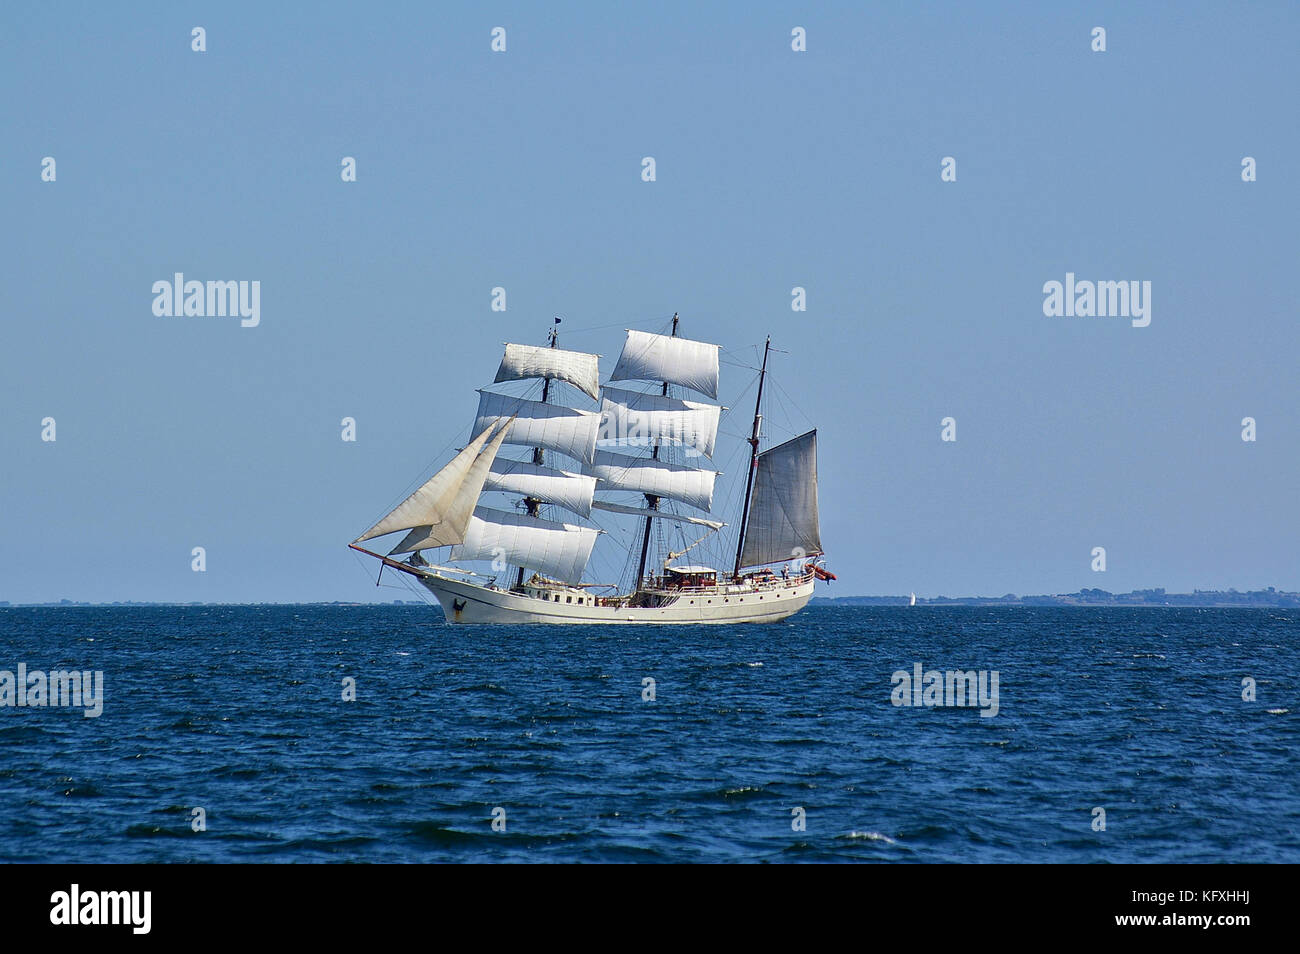 Square-rigged white sailing ship at sea with a distant shore in the far background - Stock Image